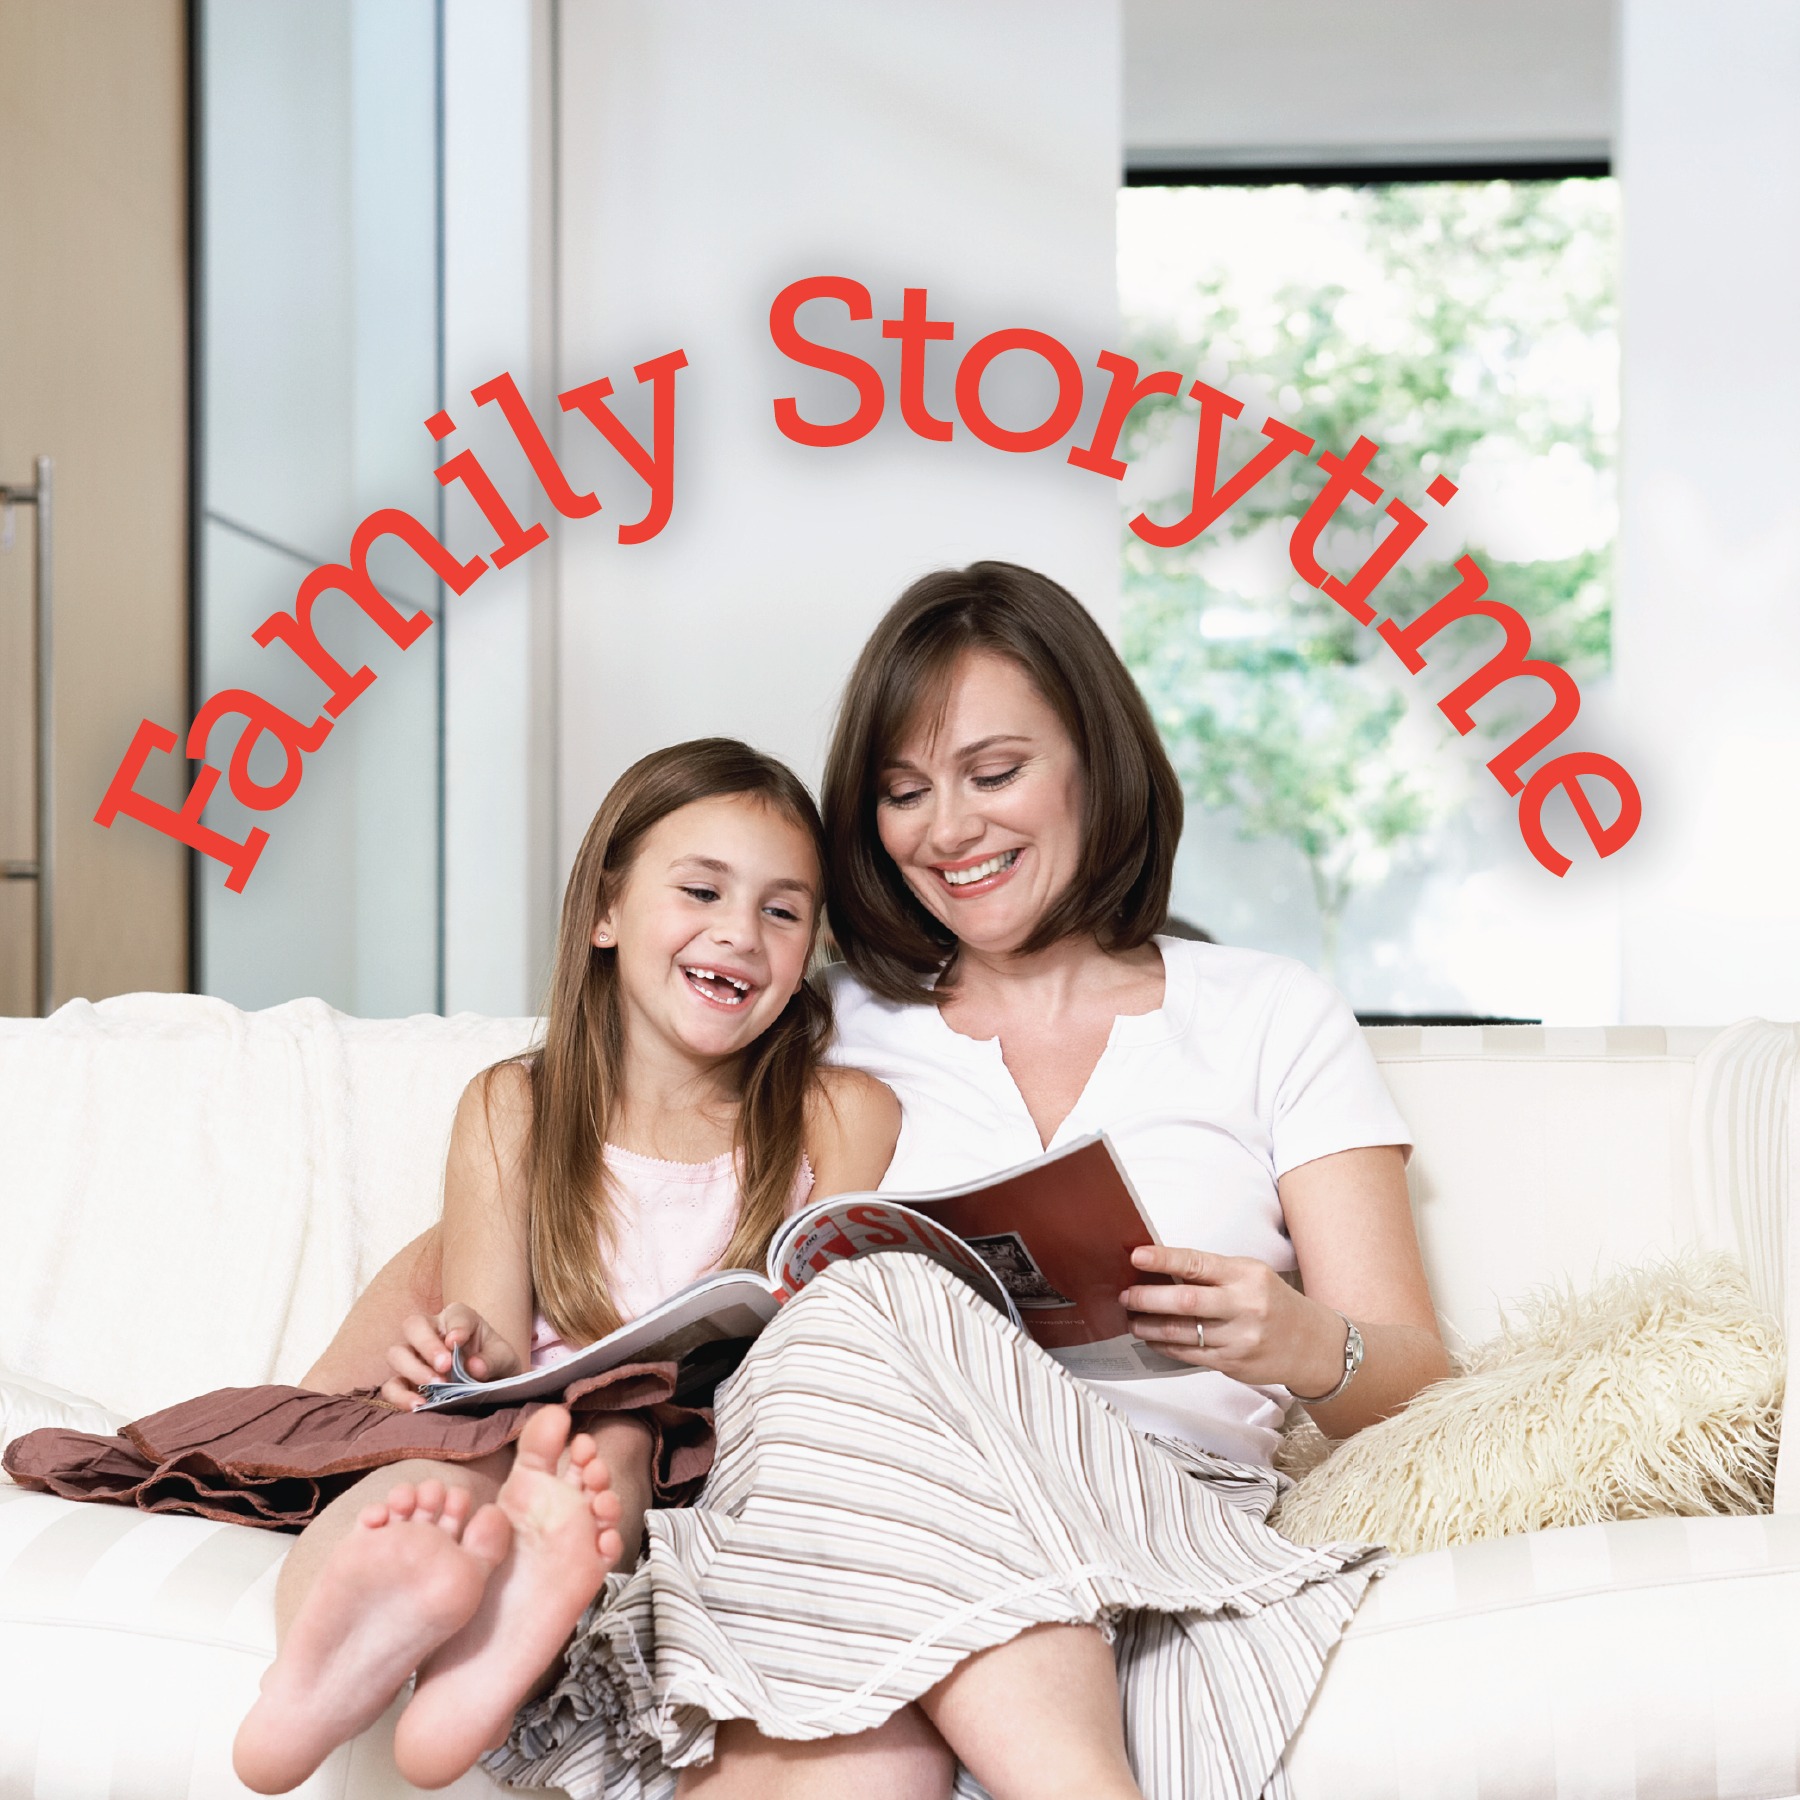 Family Storytime  - West Waco Library